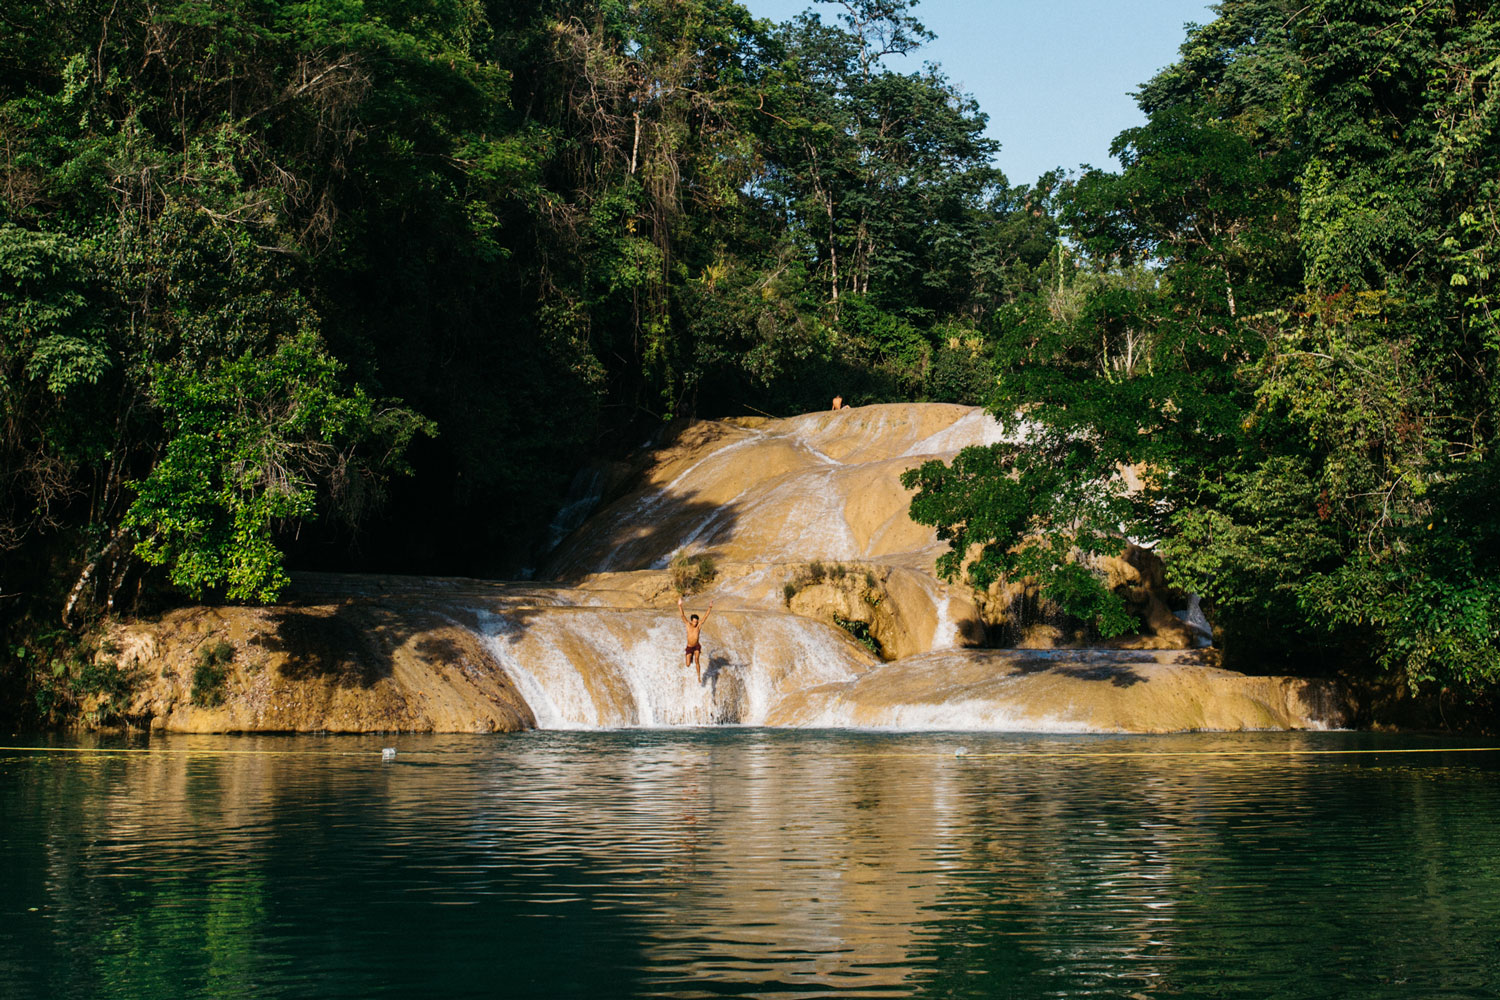 Hammocks_and_Ruins_Town_Villages_Chiapas_Lakes_Rivers_Jungles_Highlands_Agua_Azul_Waterfalls14-(long).jpg